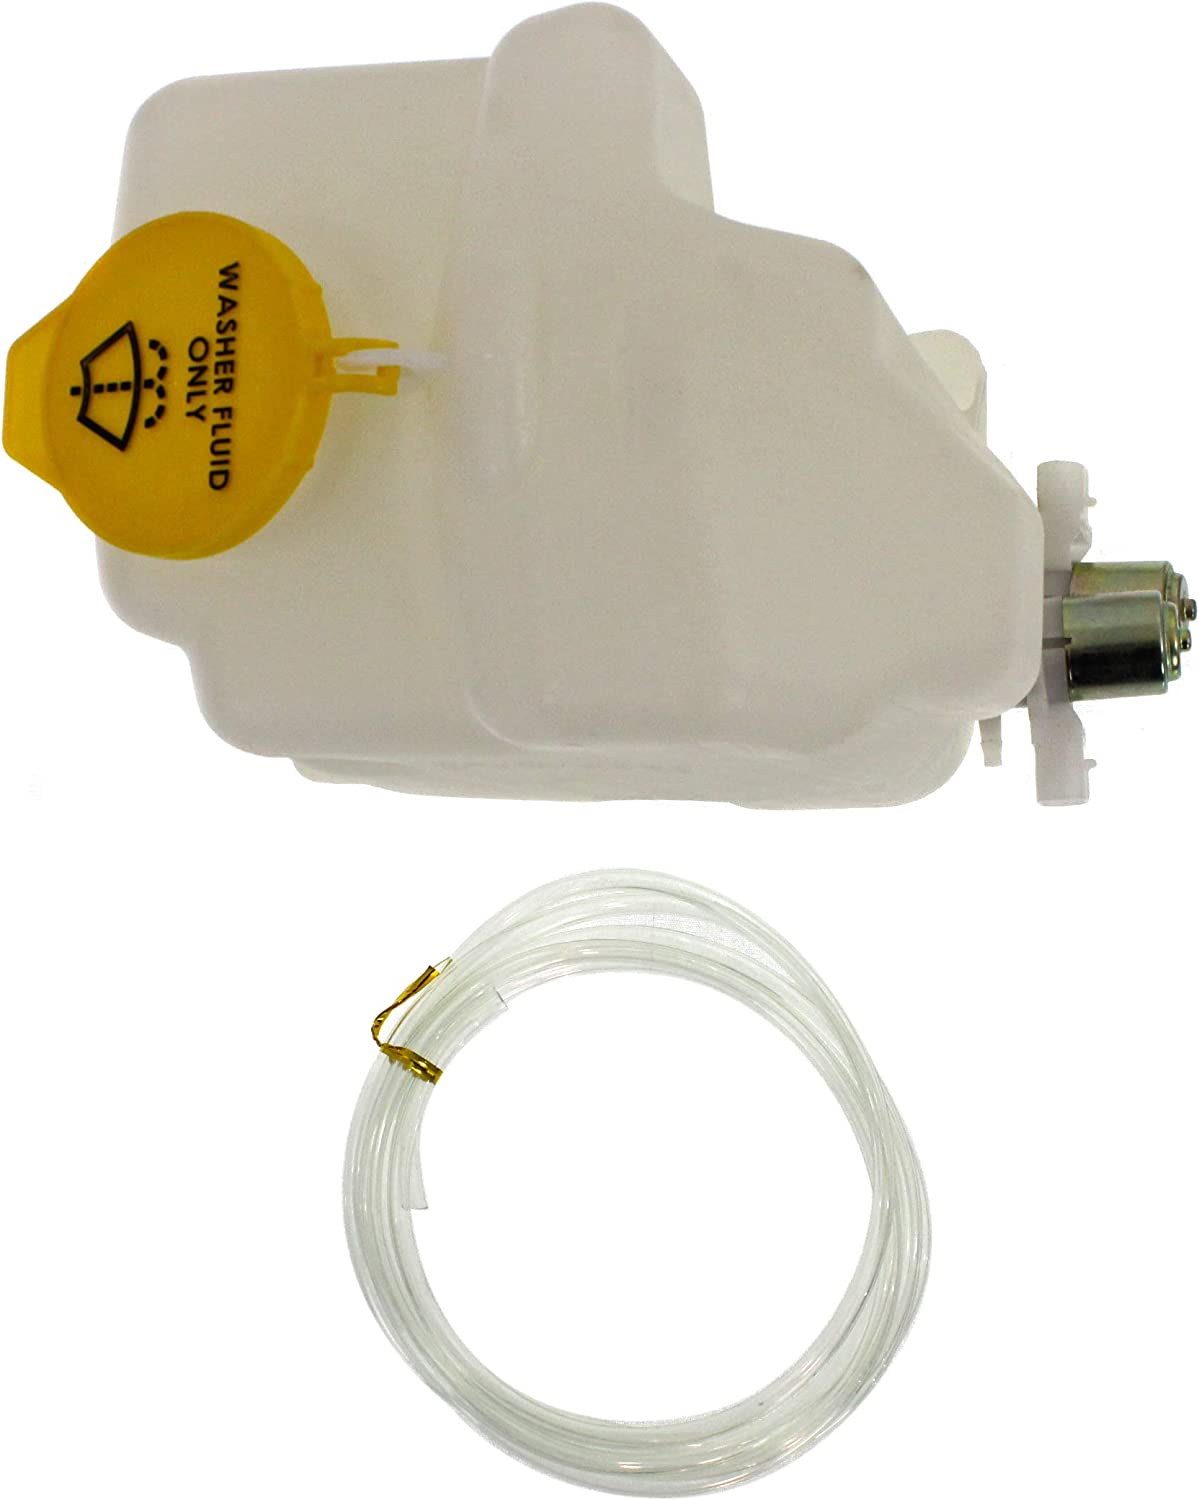 Garage-Pro Washer Reservoir for JEEP WRANGLER 2003-2006 Assembly with Dual Pump and Cap